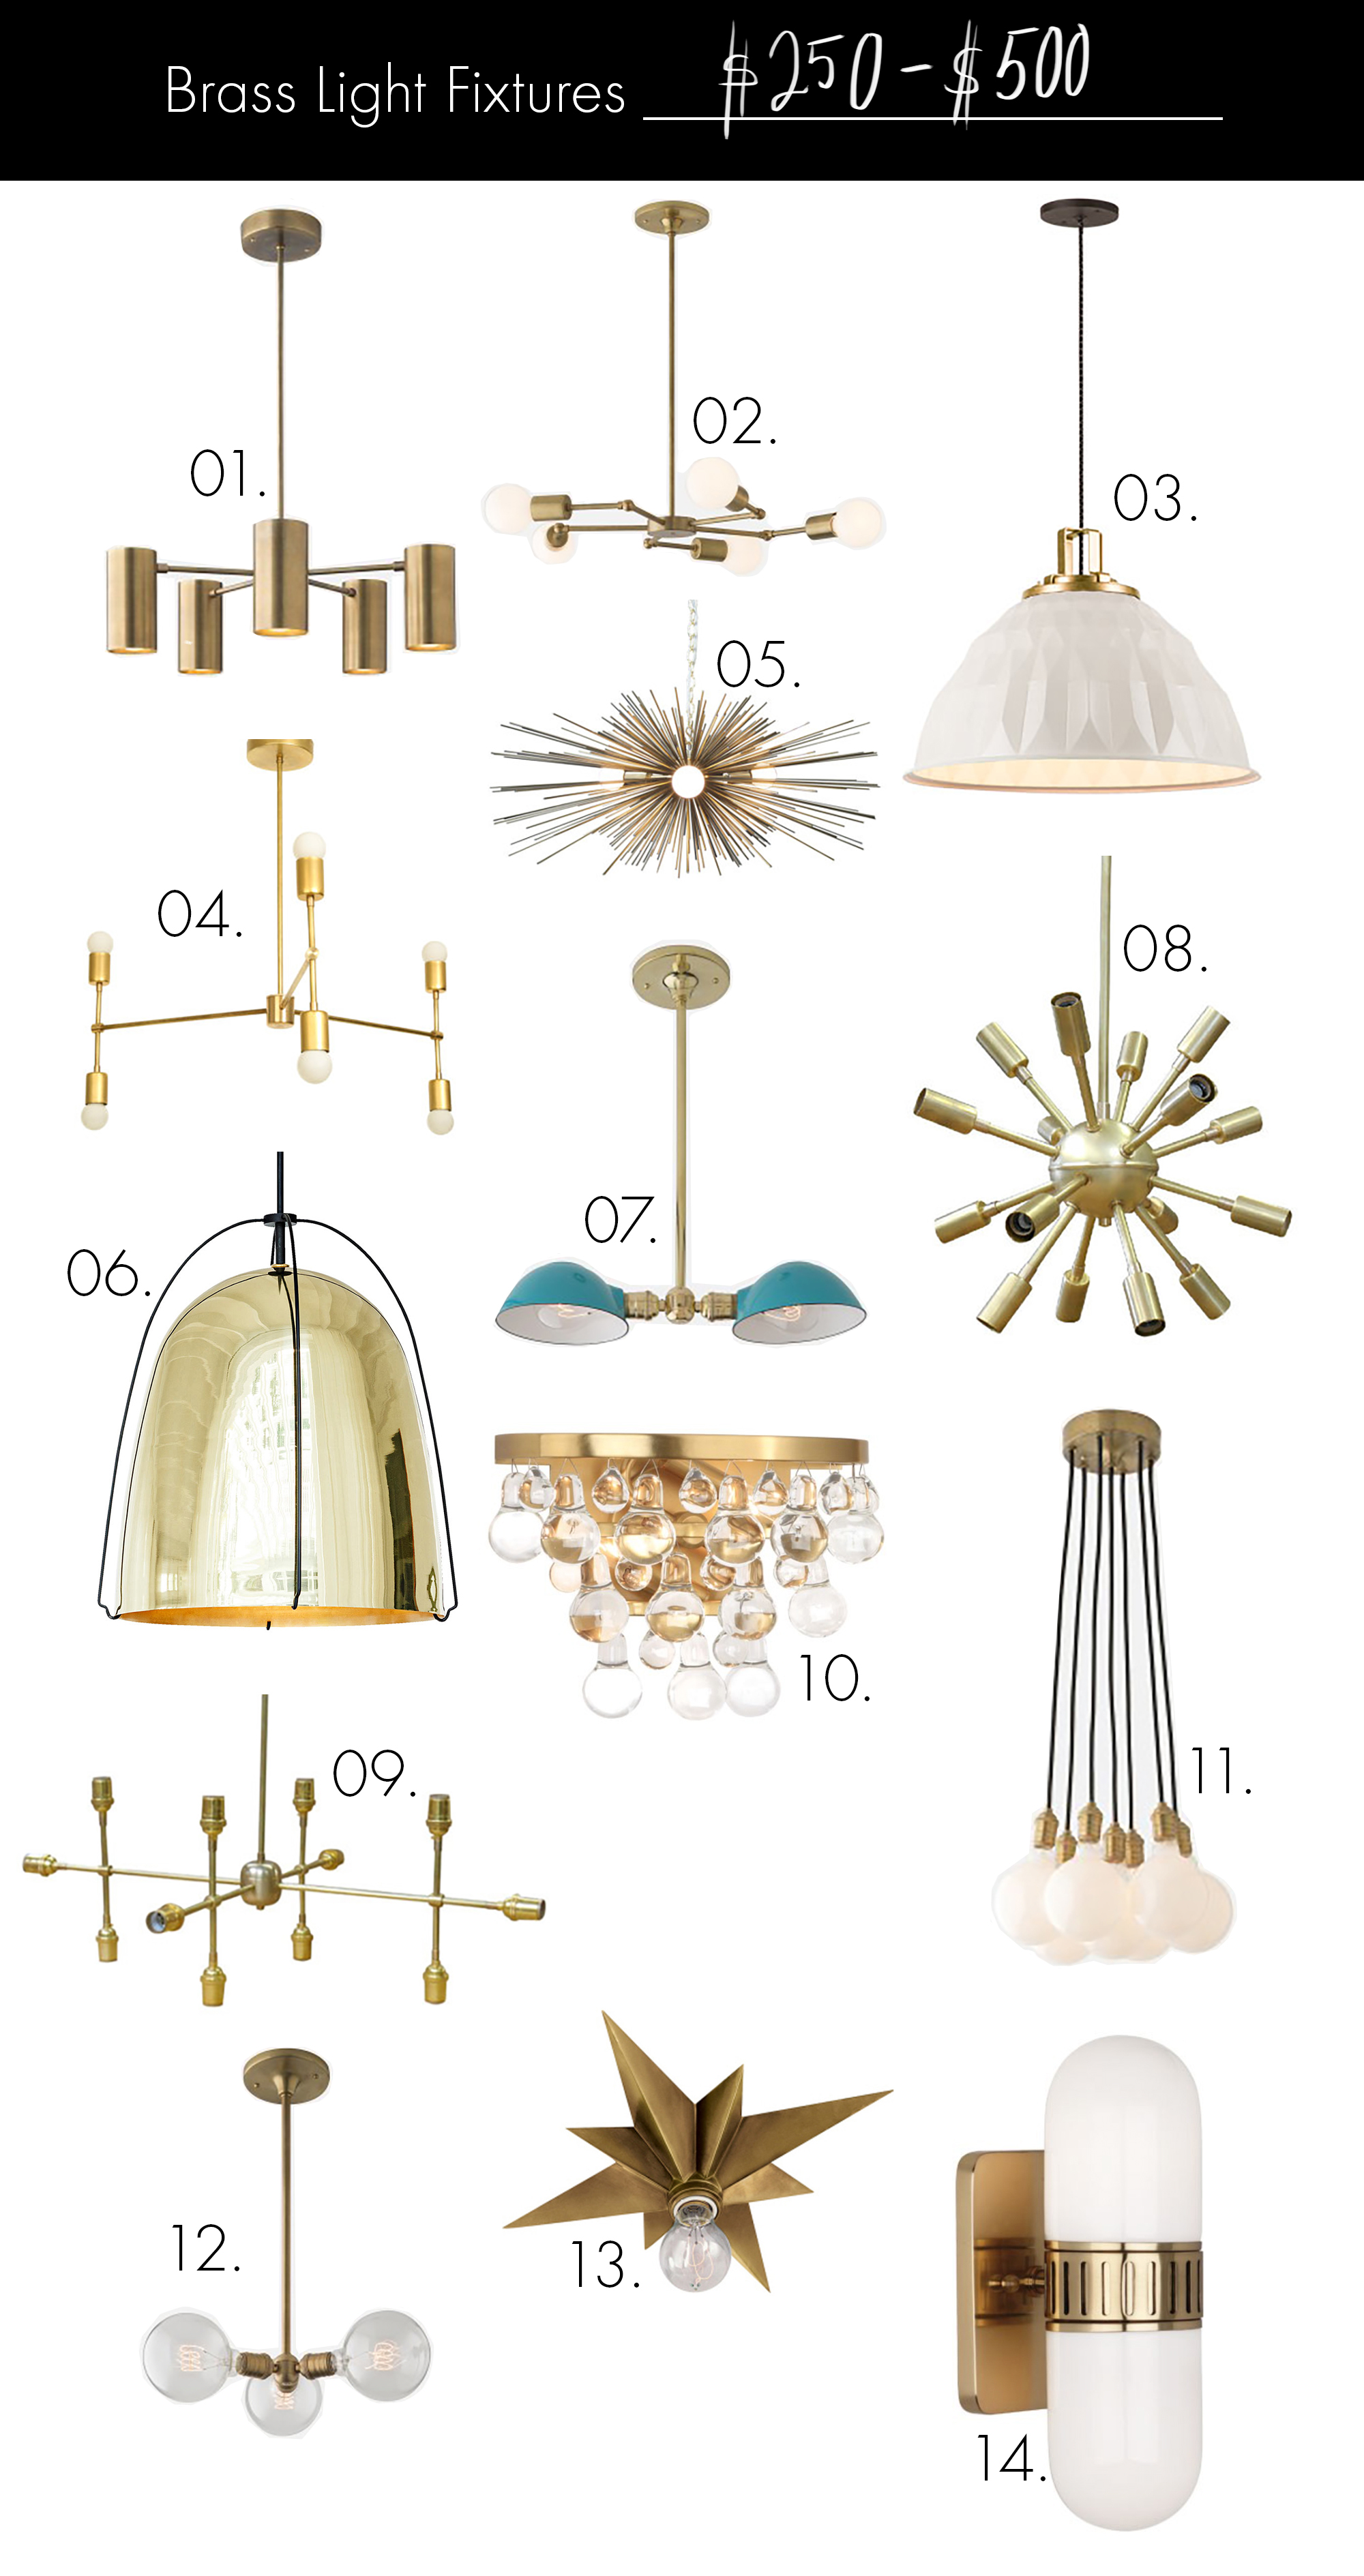 Brass Light Fixtures (on any budget!) $250-$500